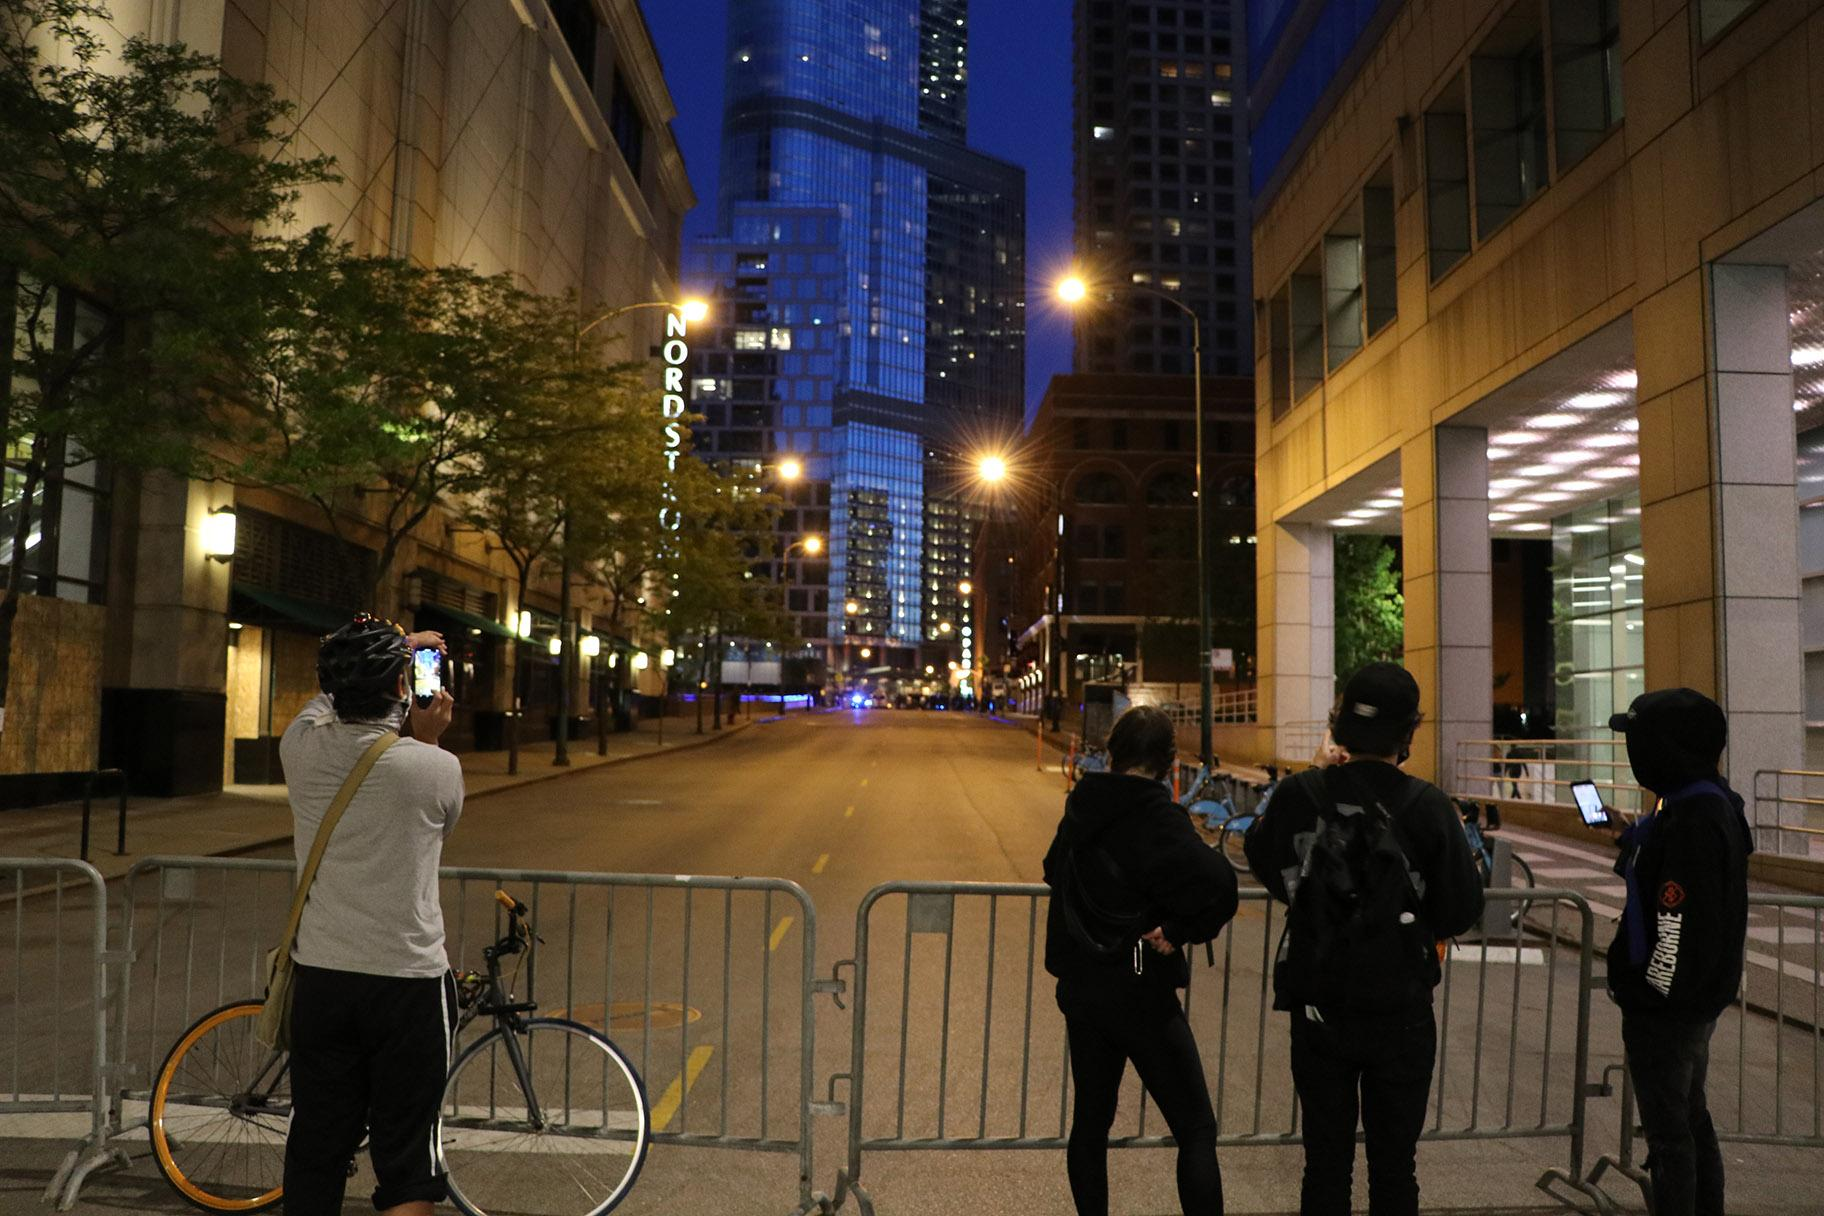 Onlookers photograph the police presence on Wabash Avenue behind a barricade. (Evan Garcia / WTTW News)